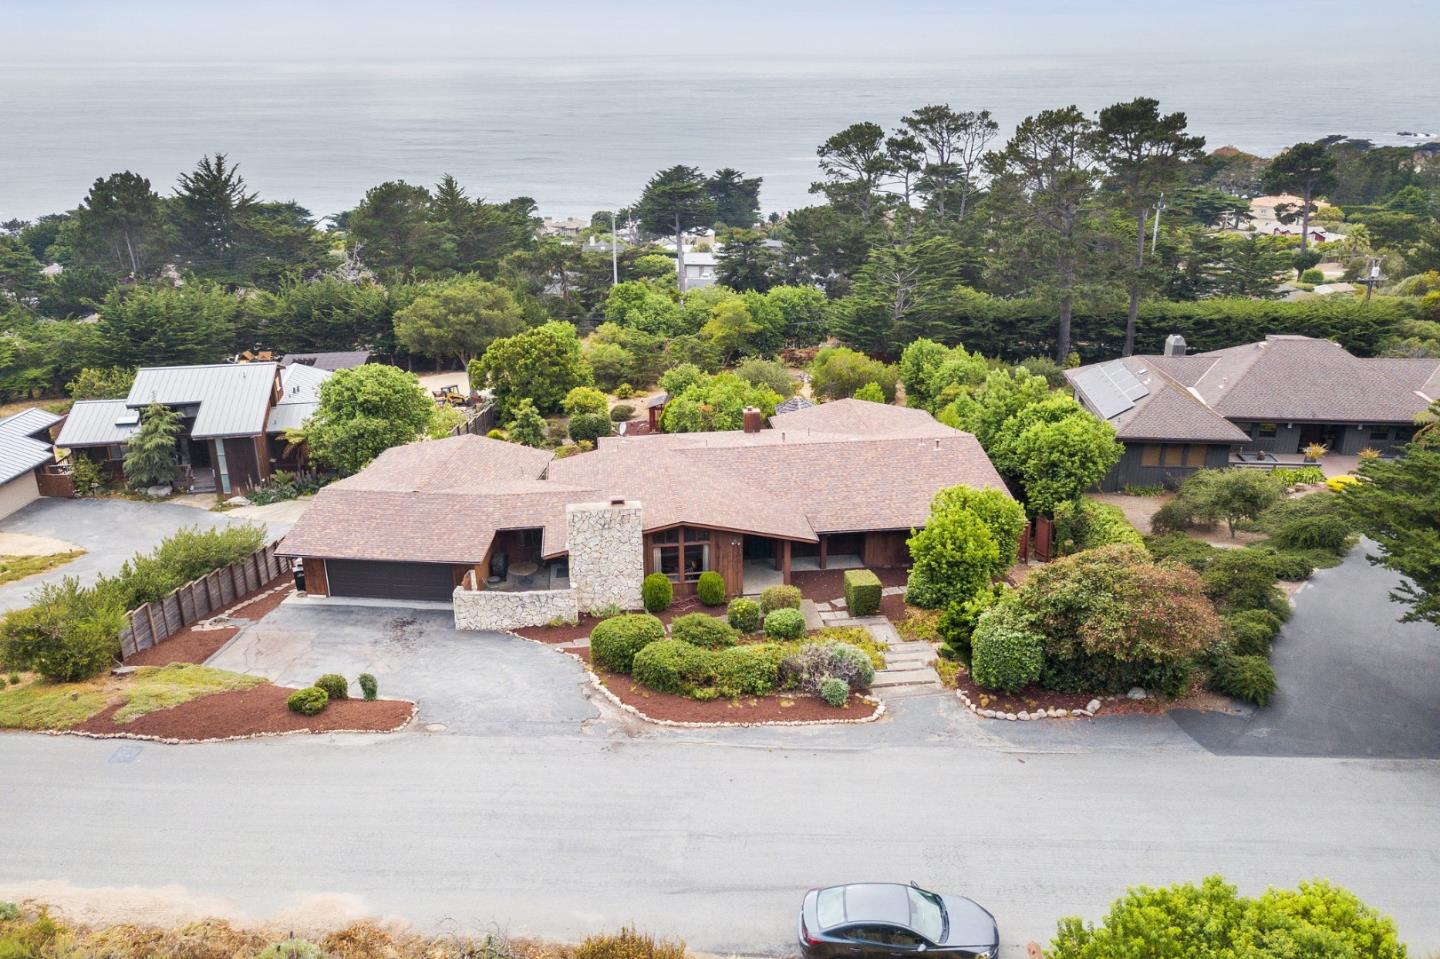 Located in a peaceful and magical area of the Carmel Highlands, this home sits in a place where the mountains meet the sea and the whales pass by a couple time a year. The first time on the market in 47 years, its ready for someone new to shape this space and the canvas to make it your place. The four bedroom, three bath home has all of the areas to create a standalone everyday escape. Three bedrooms and two baths on the main floor, with an additional bedroom suite and family room downstairs. Other extra areas include the large backyard, separate gym/ workshop, den, and bonus space. And you can walk down the road and access a secluded beach. This is where you can design your future. What will your 40+ years look like?